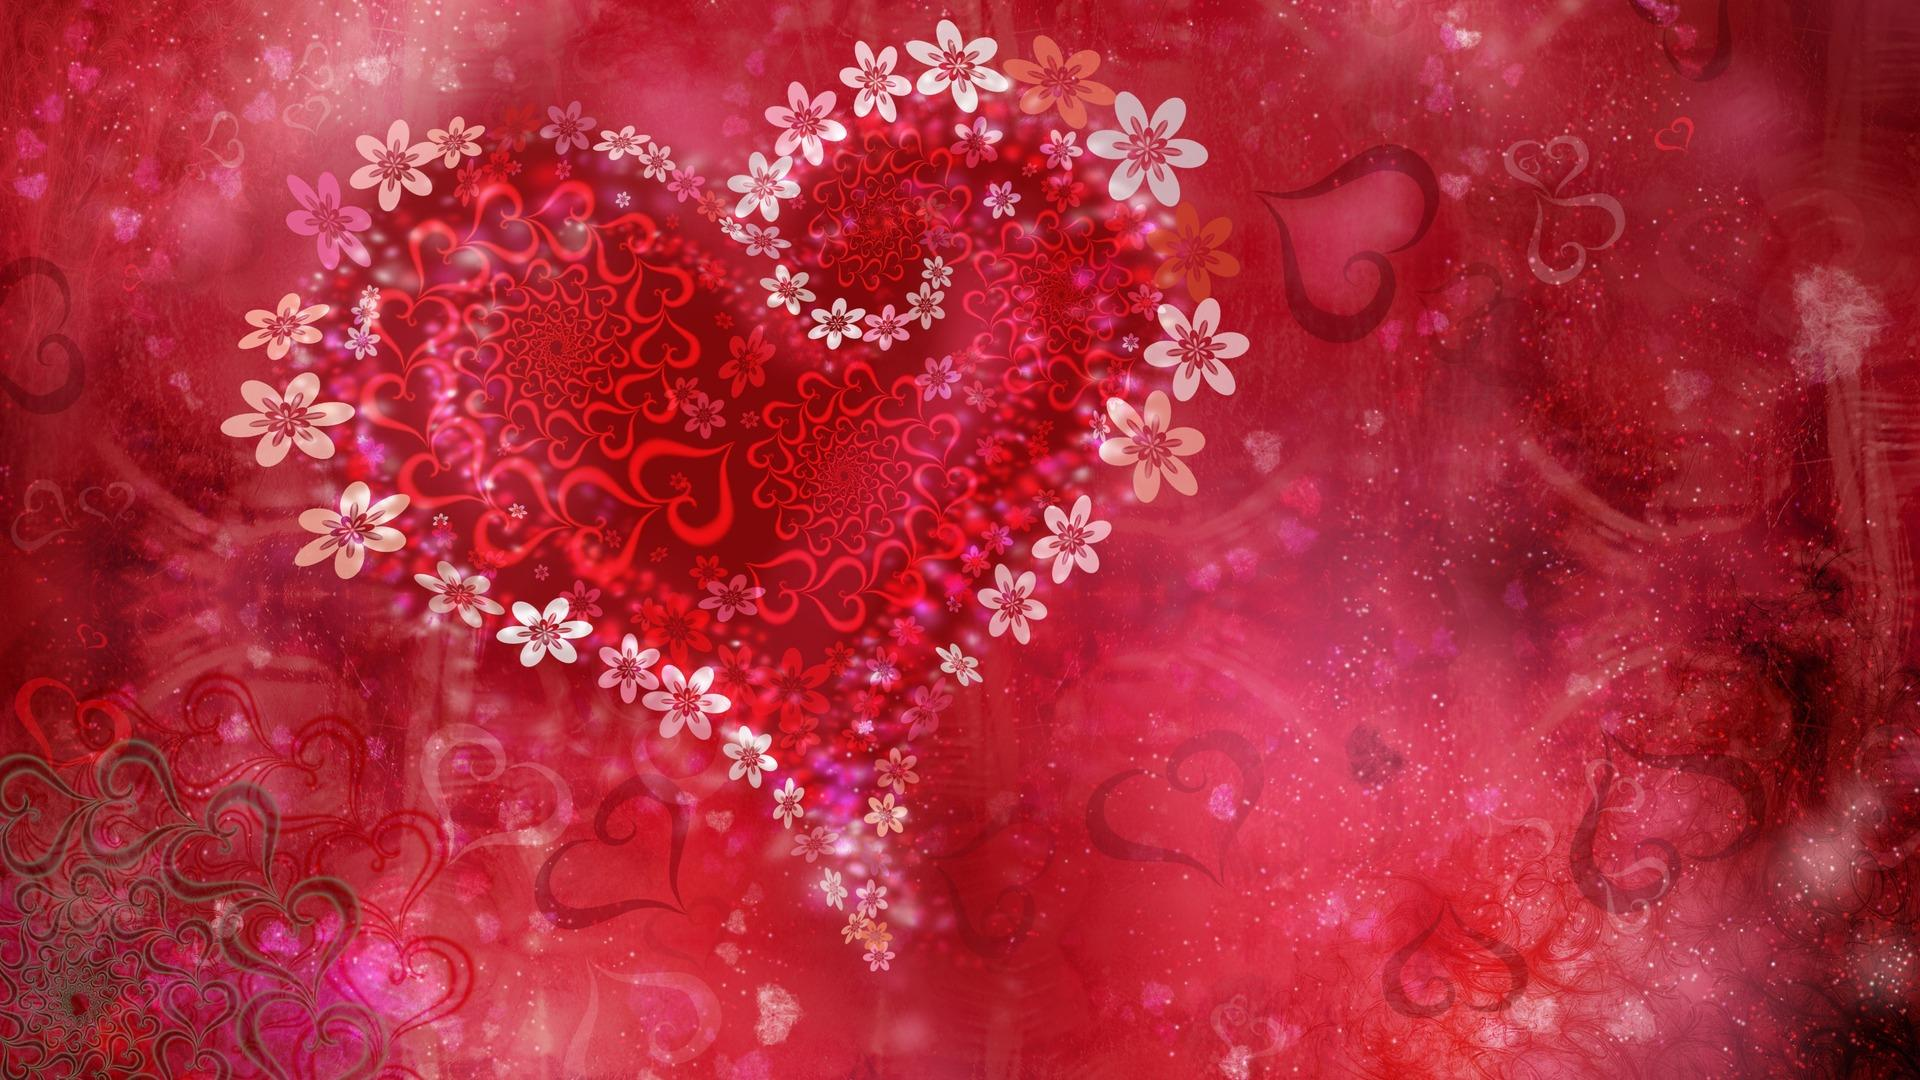 abstract love desktop wallpaper 50430